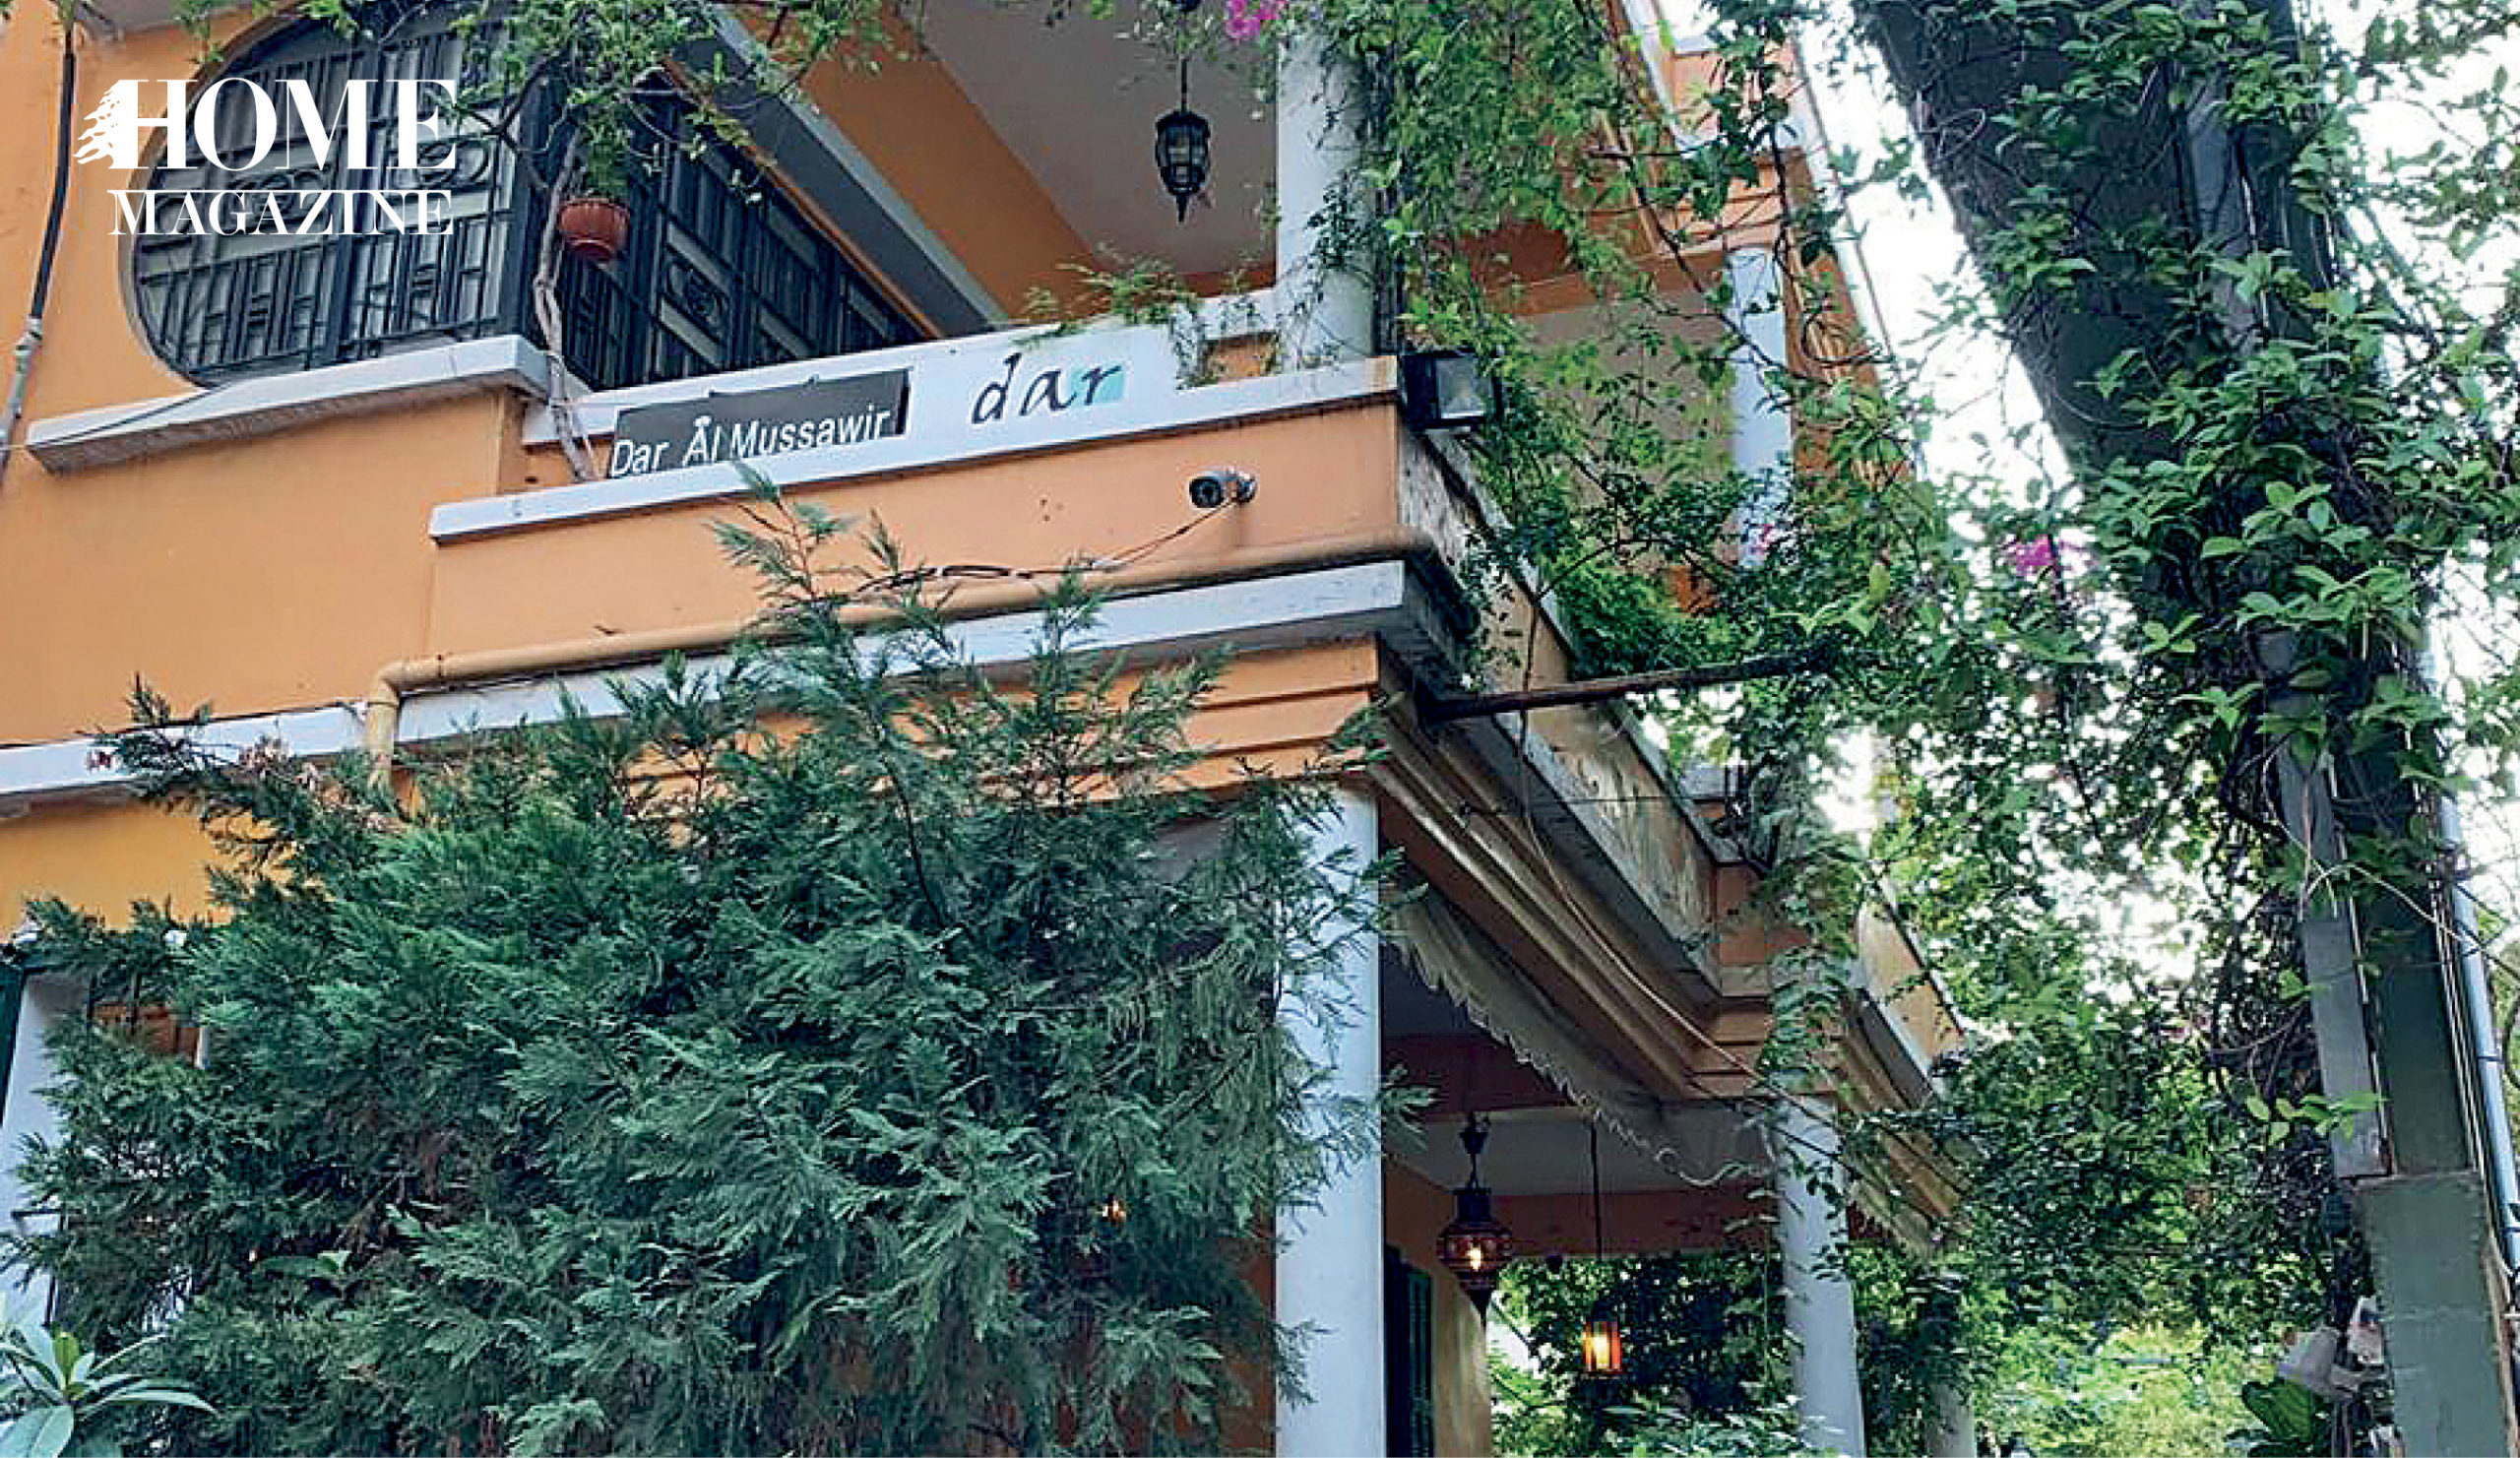 Orange painted building with green trees and plants